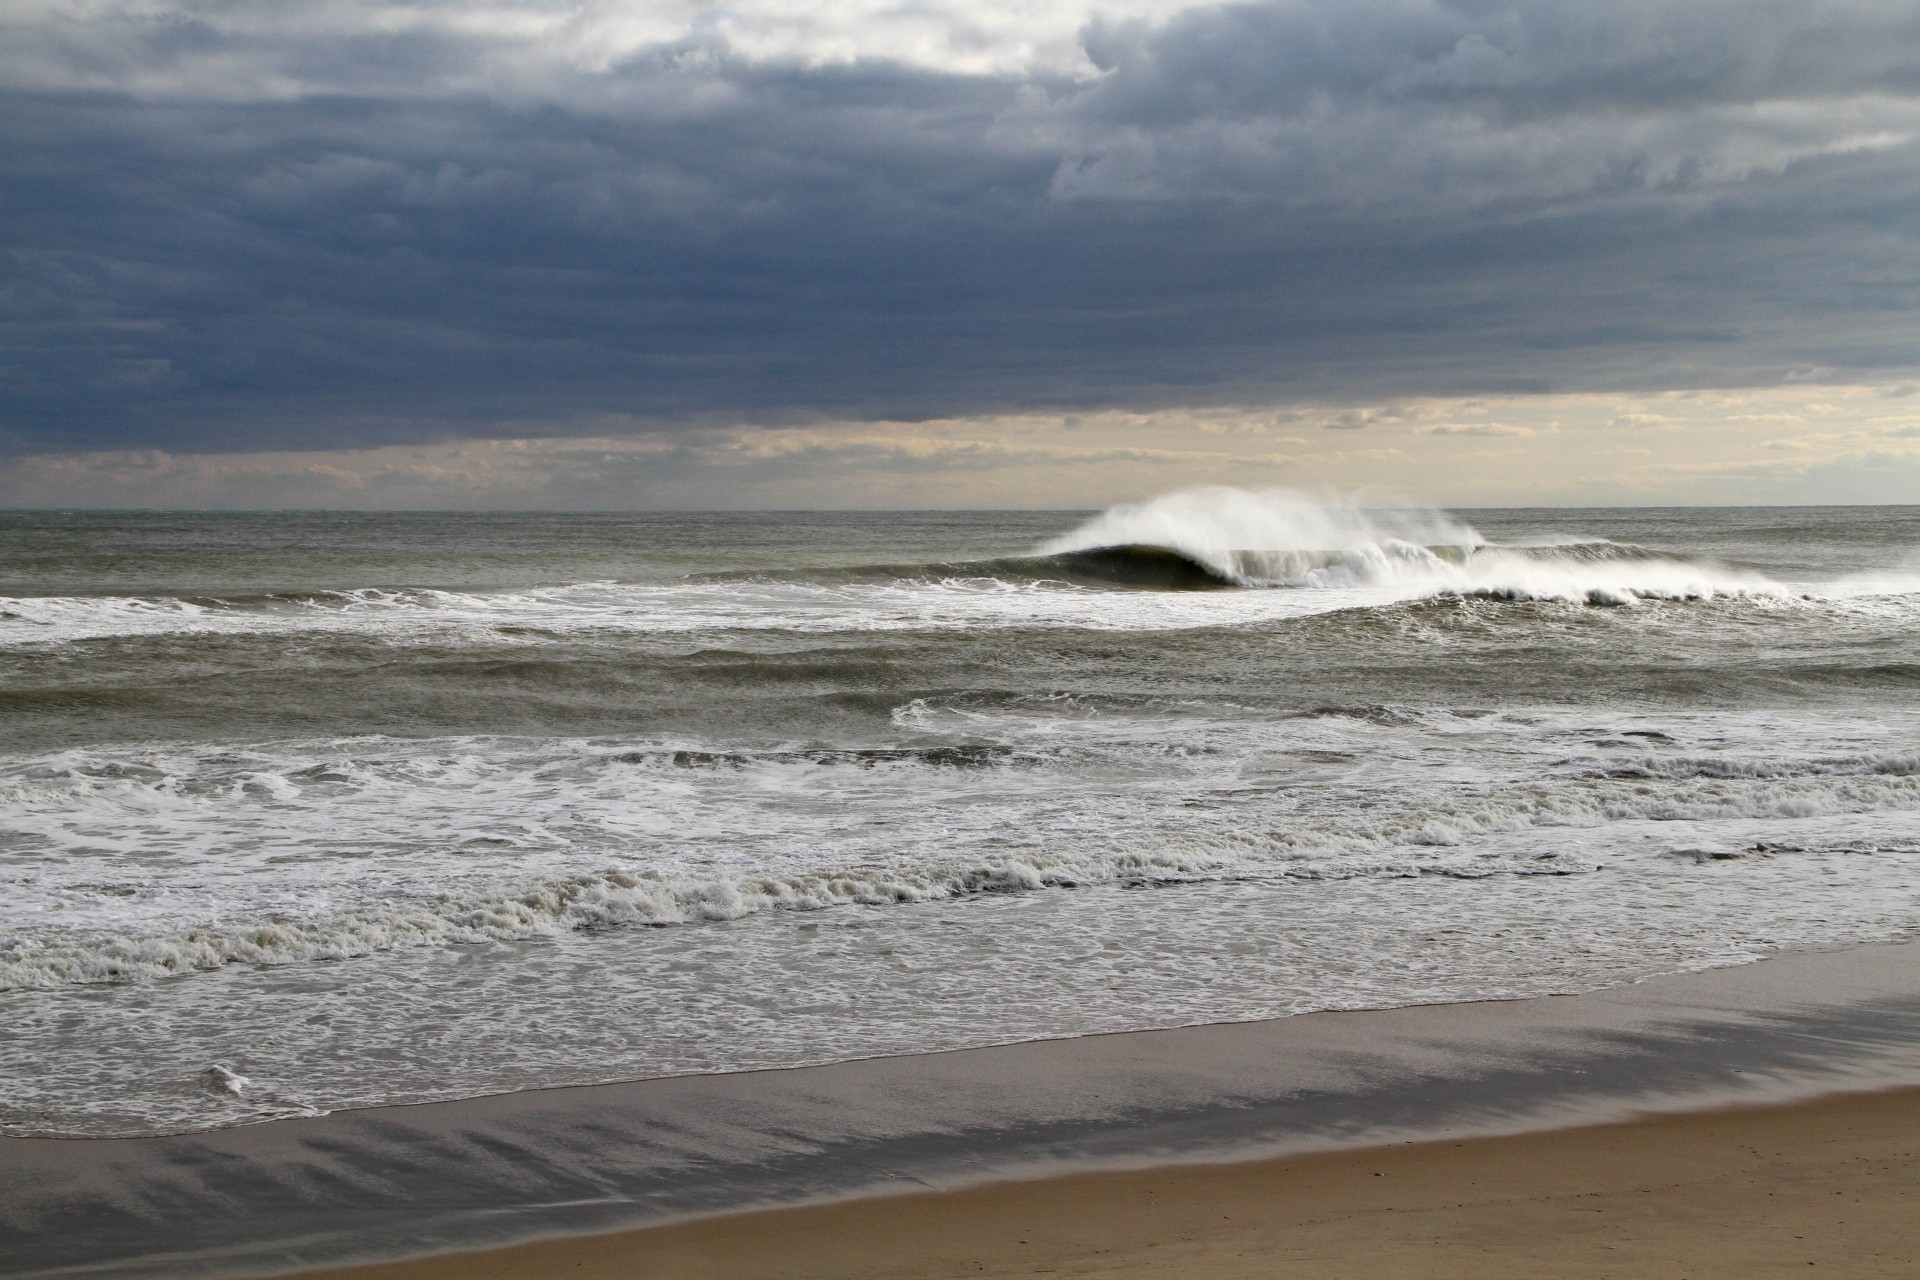 Clint's photo of Kitty Hawk